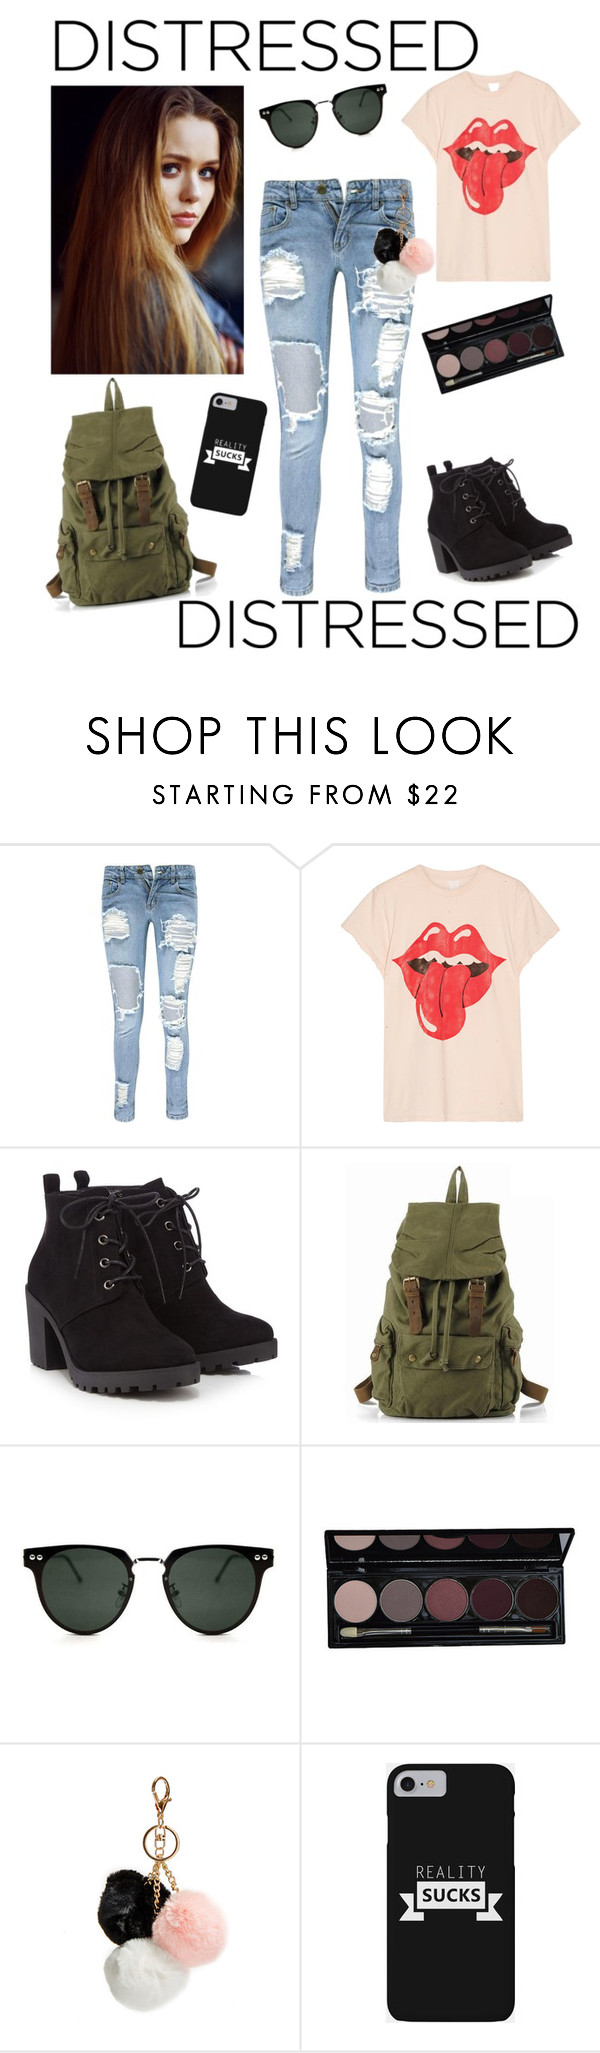 """""""MOOD"""" by dstanford1020 ❤ liked on Polyvore featuring Boohoo, MadeWorn, Red Herring, Spitfire, GUESS and Toni&Guy"""